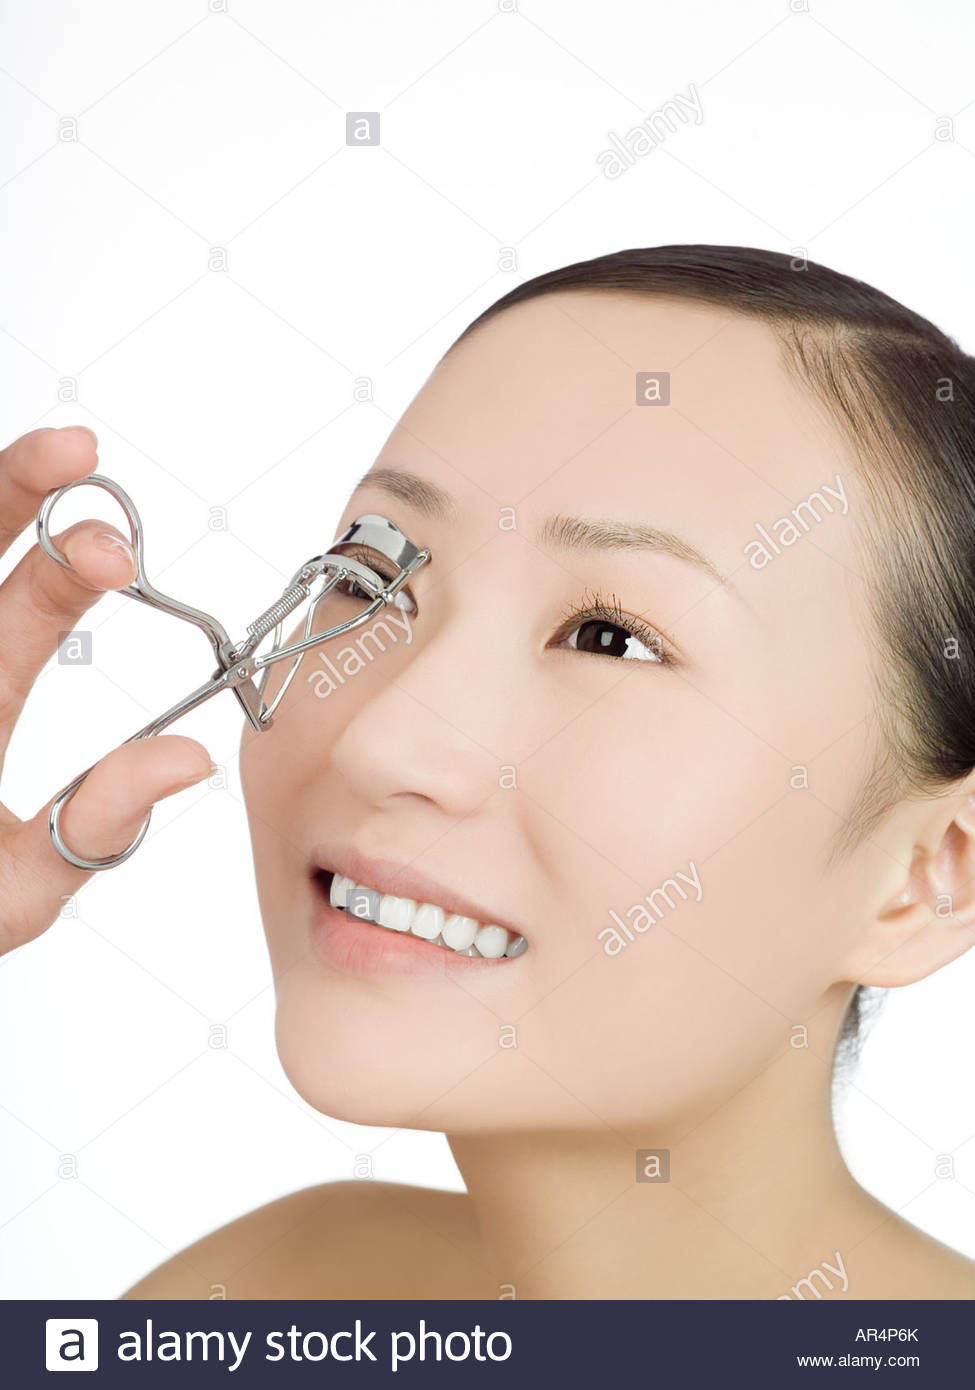 Chinese woman curling her eyelashes - Stock Image